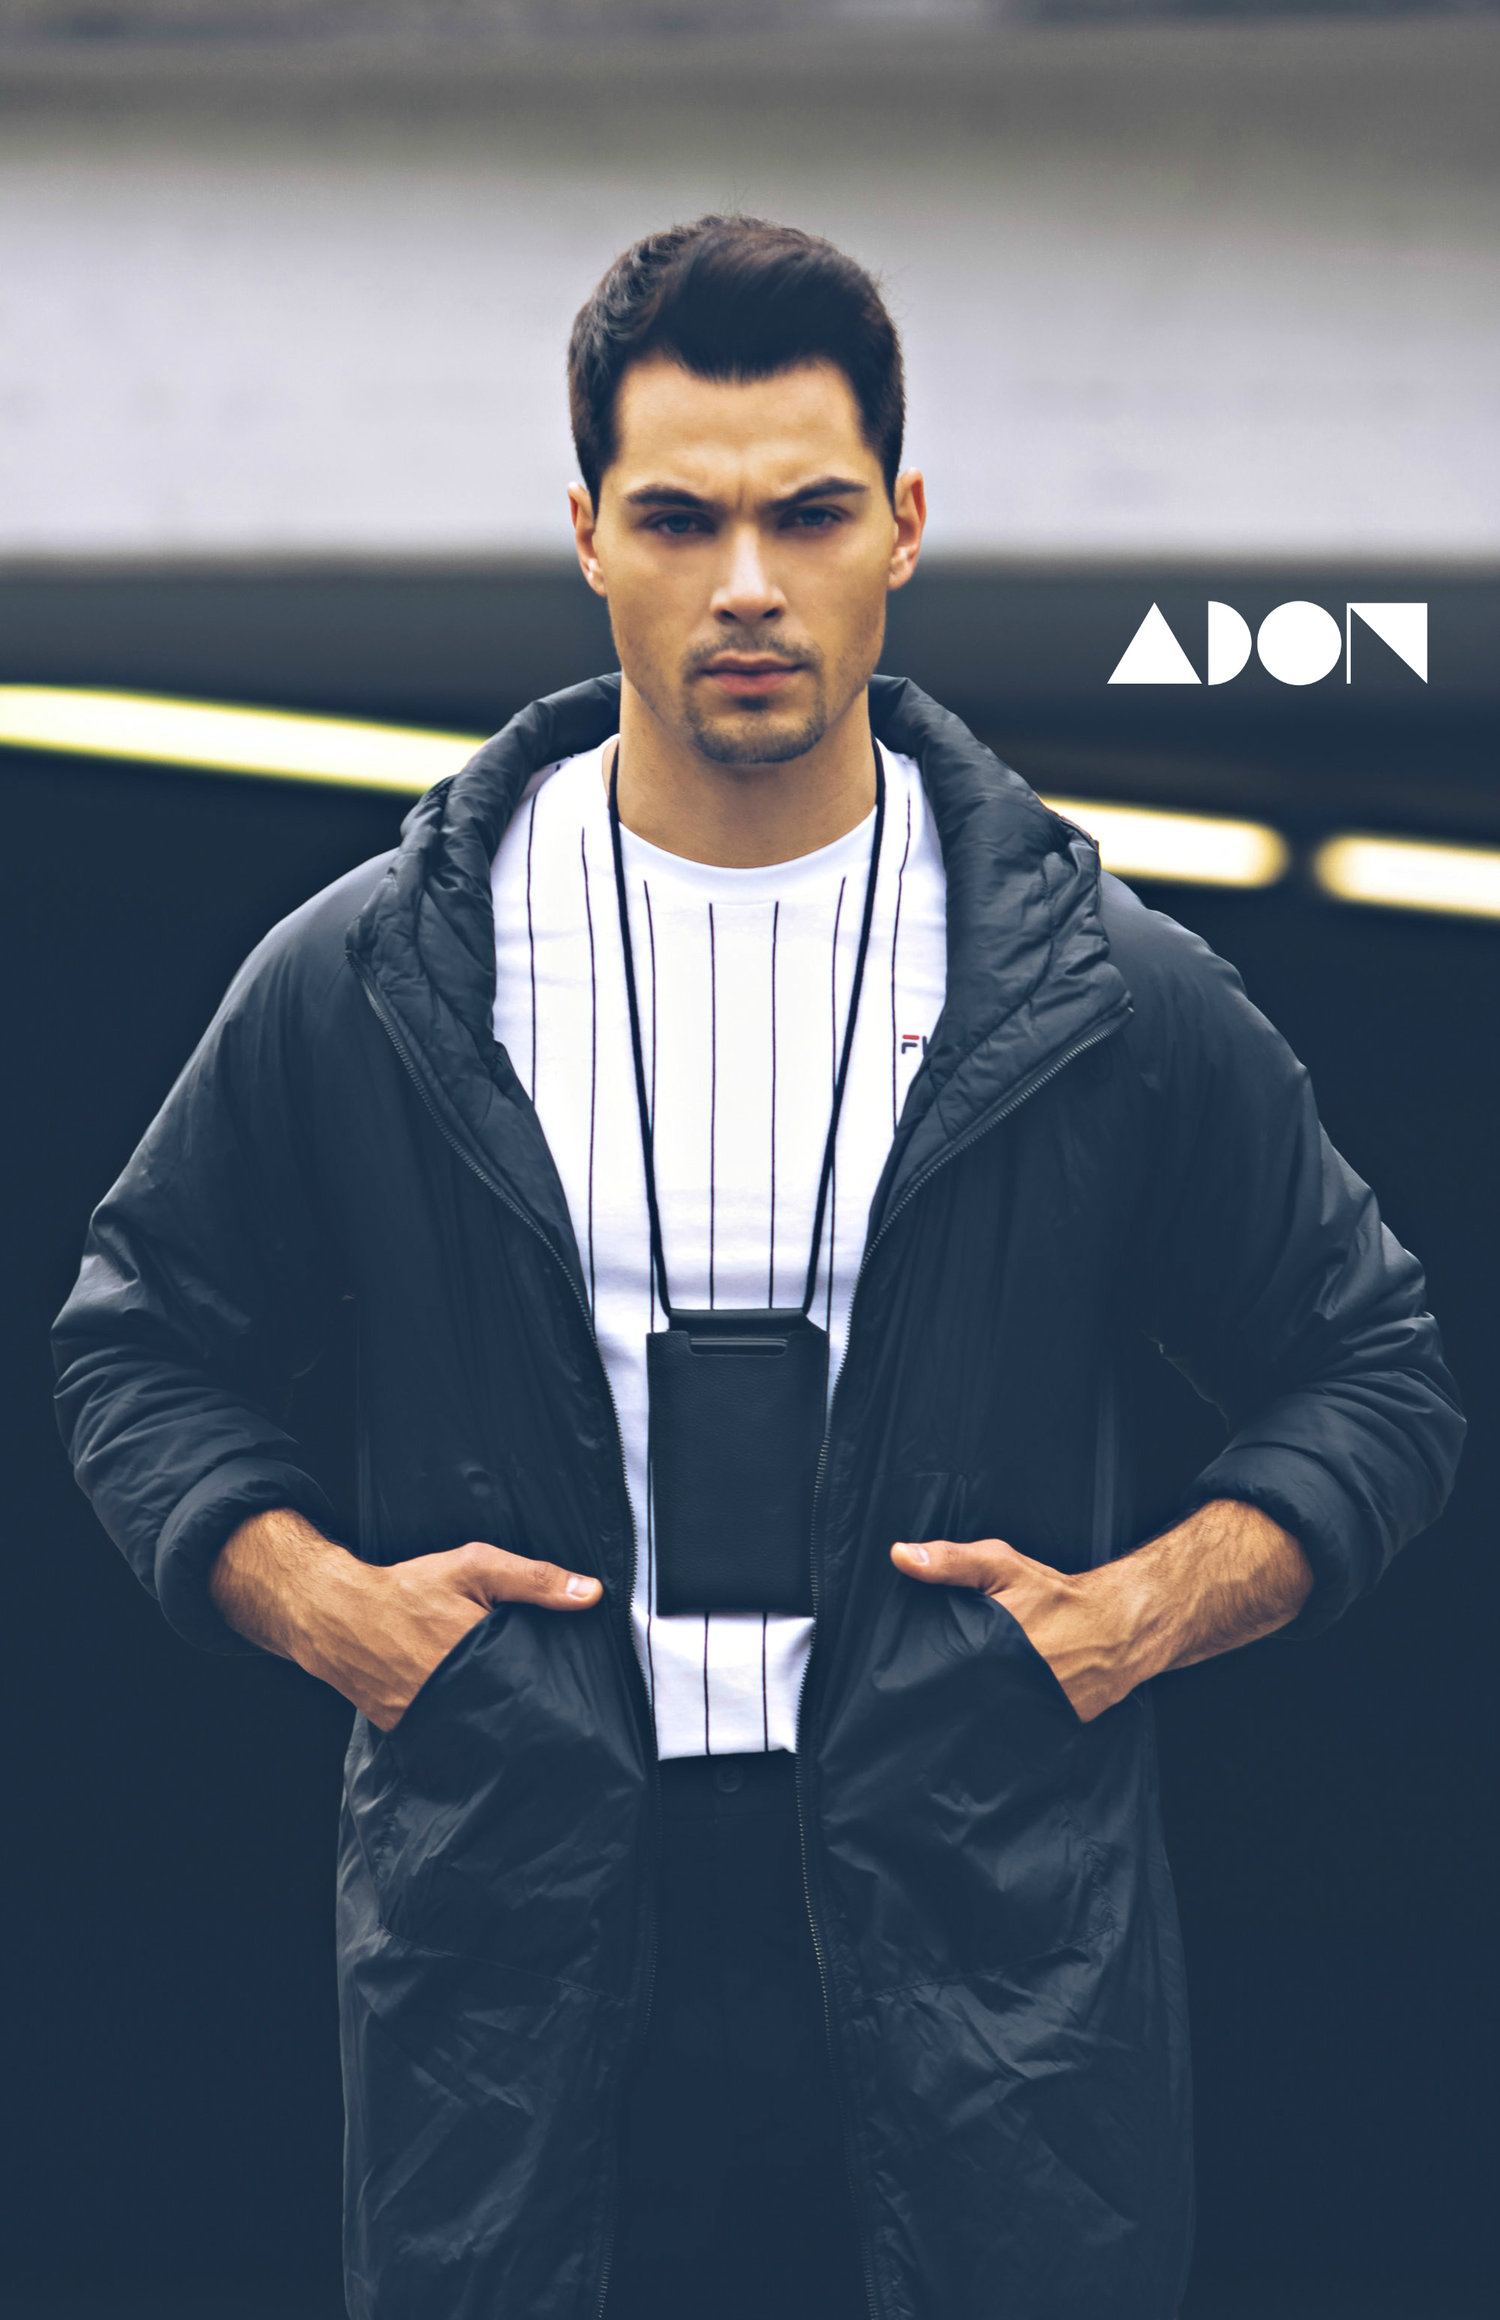 Adon Exclusive: Model Markus Schäfer By Felix Sattel